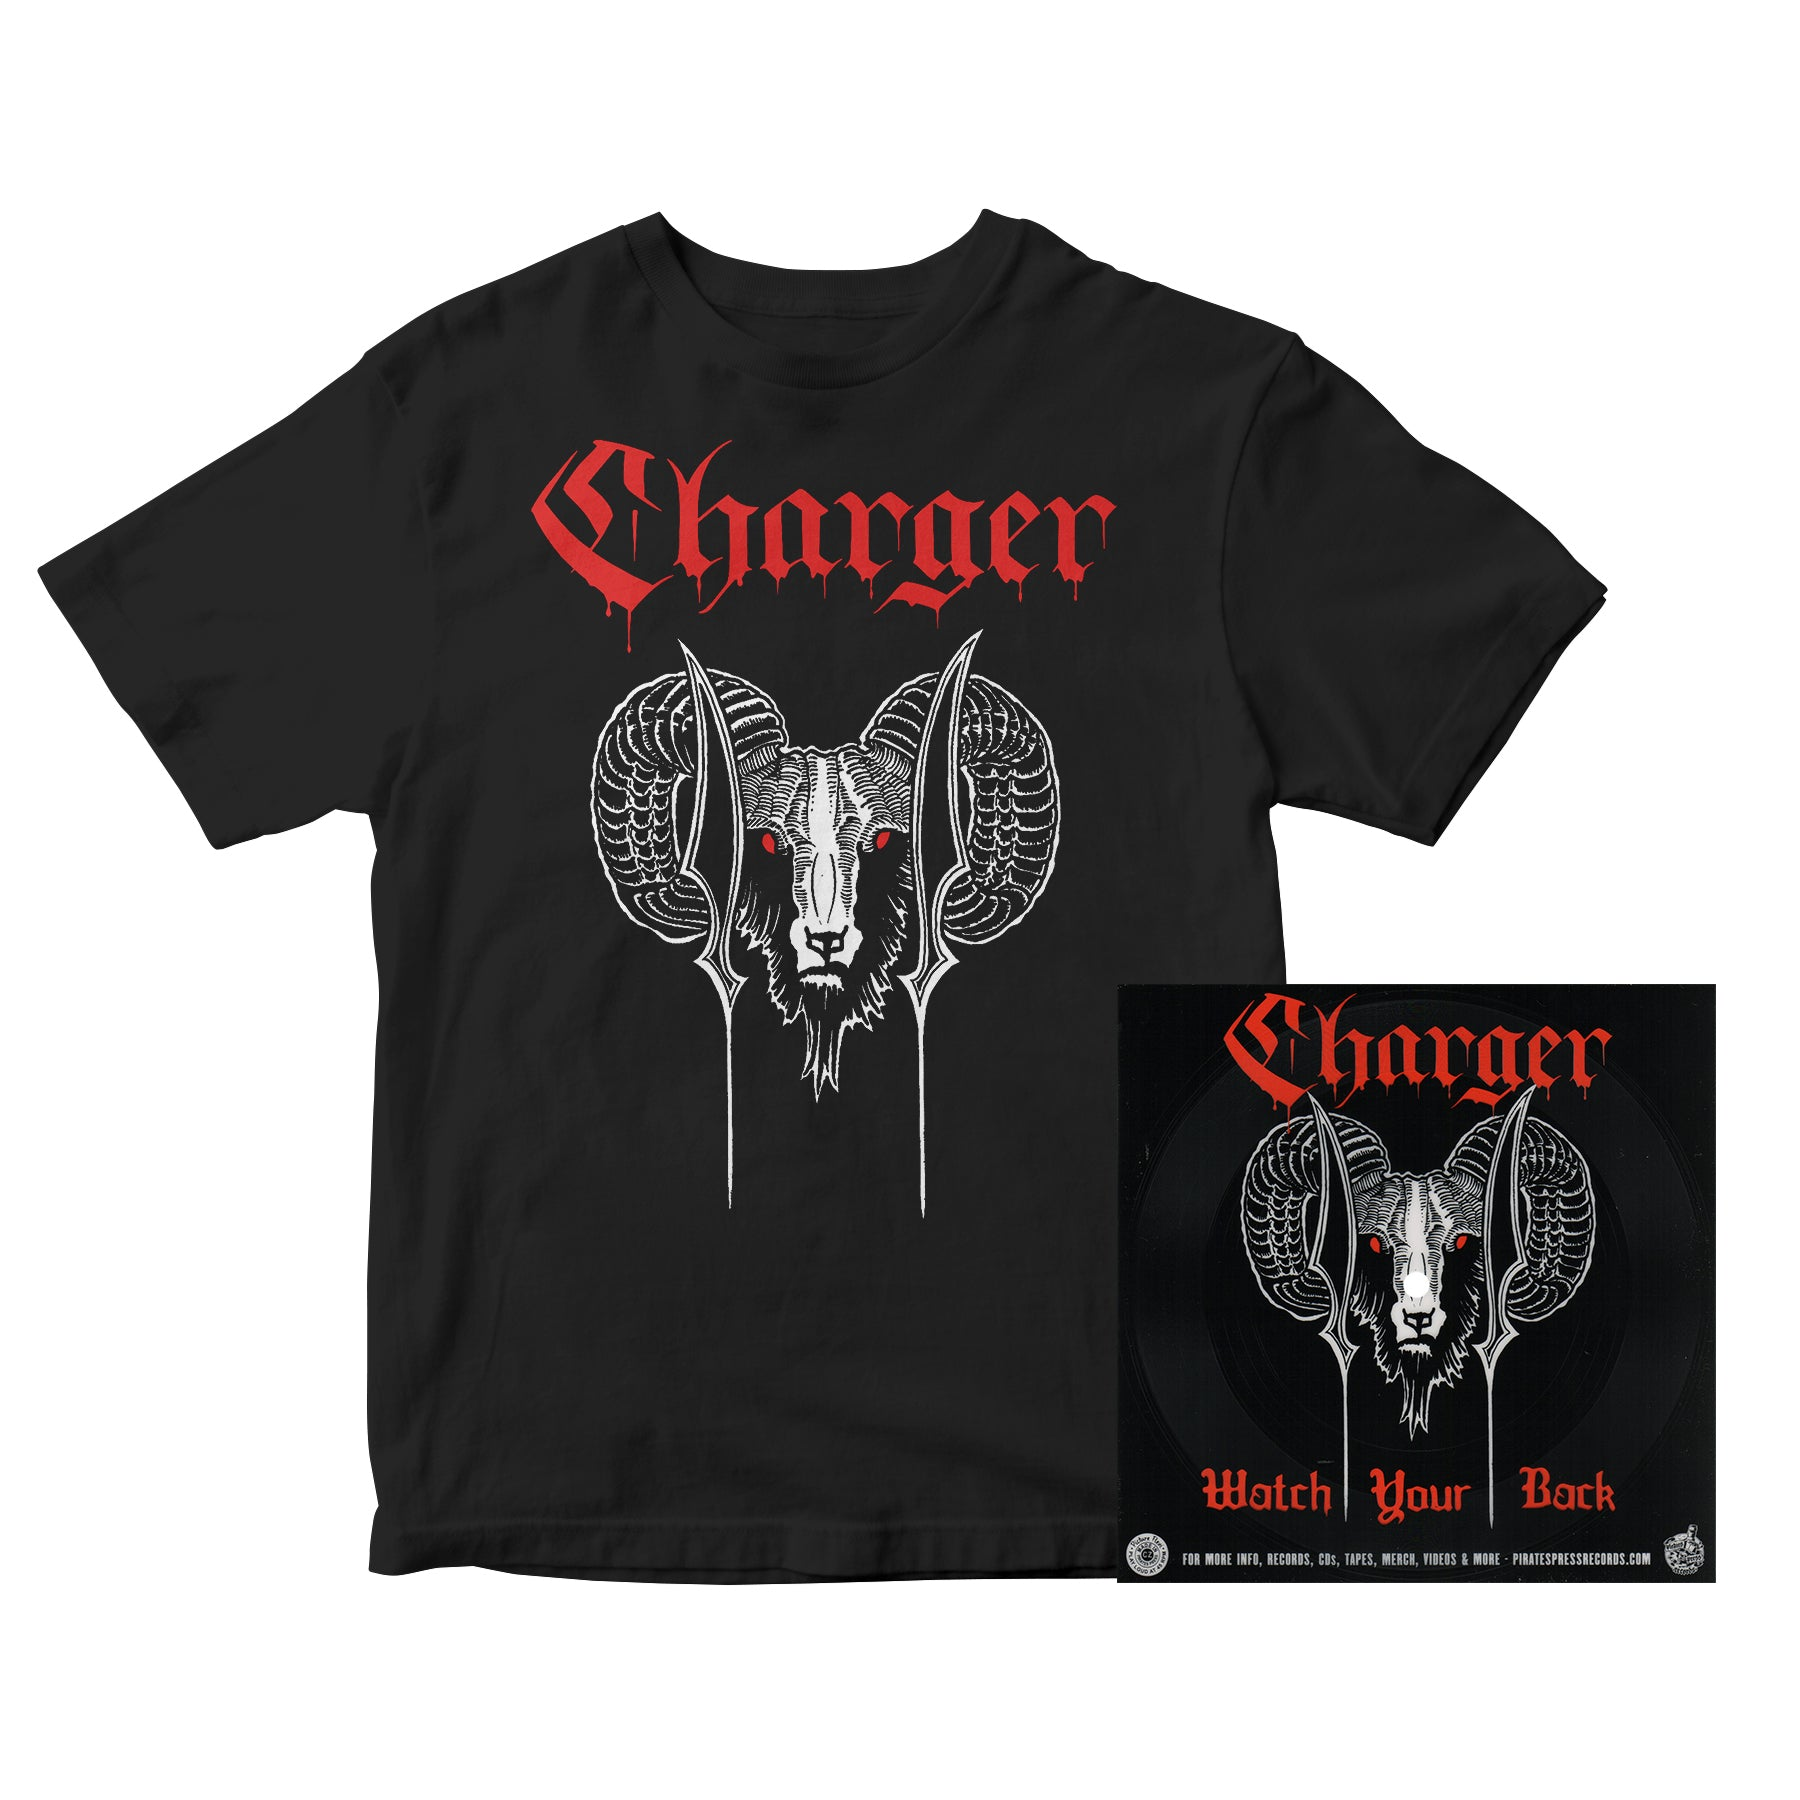 Charger - Ram with Red Text - Black - T-Shirt